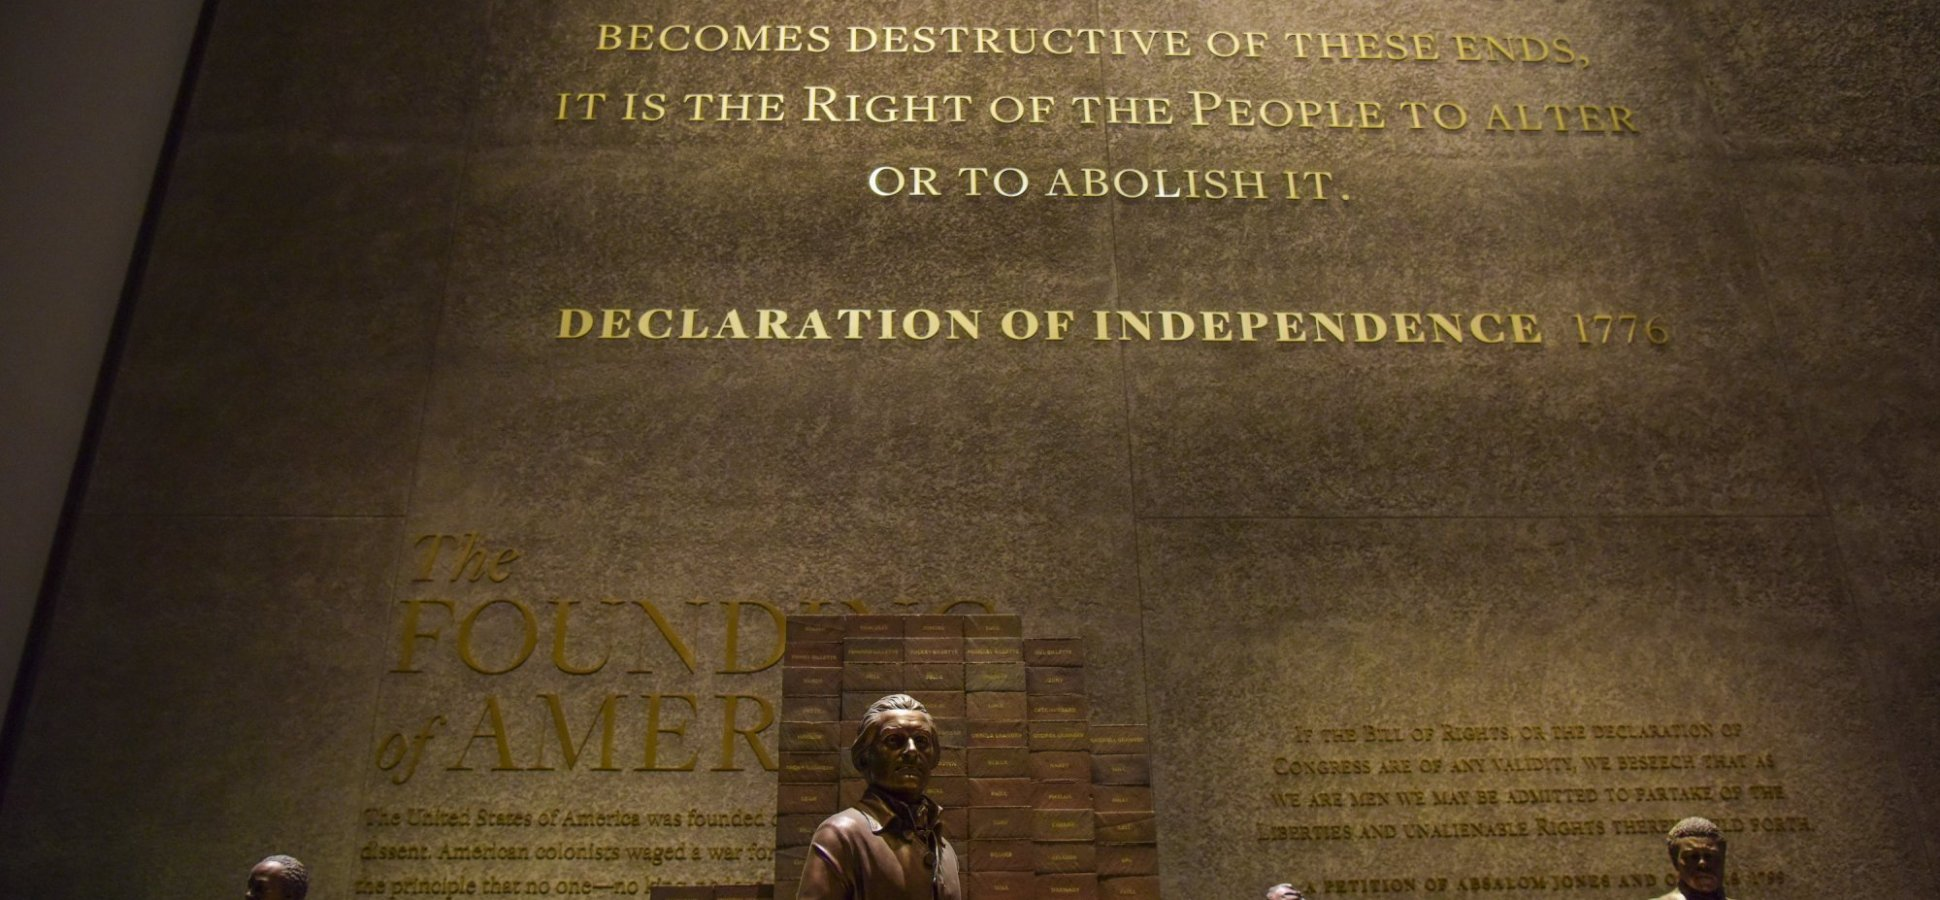 3 lessons in persuasion the declaration of independence can teach todays leaders inccom